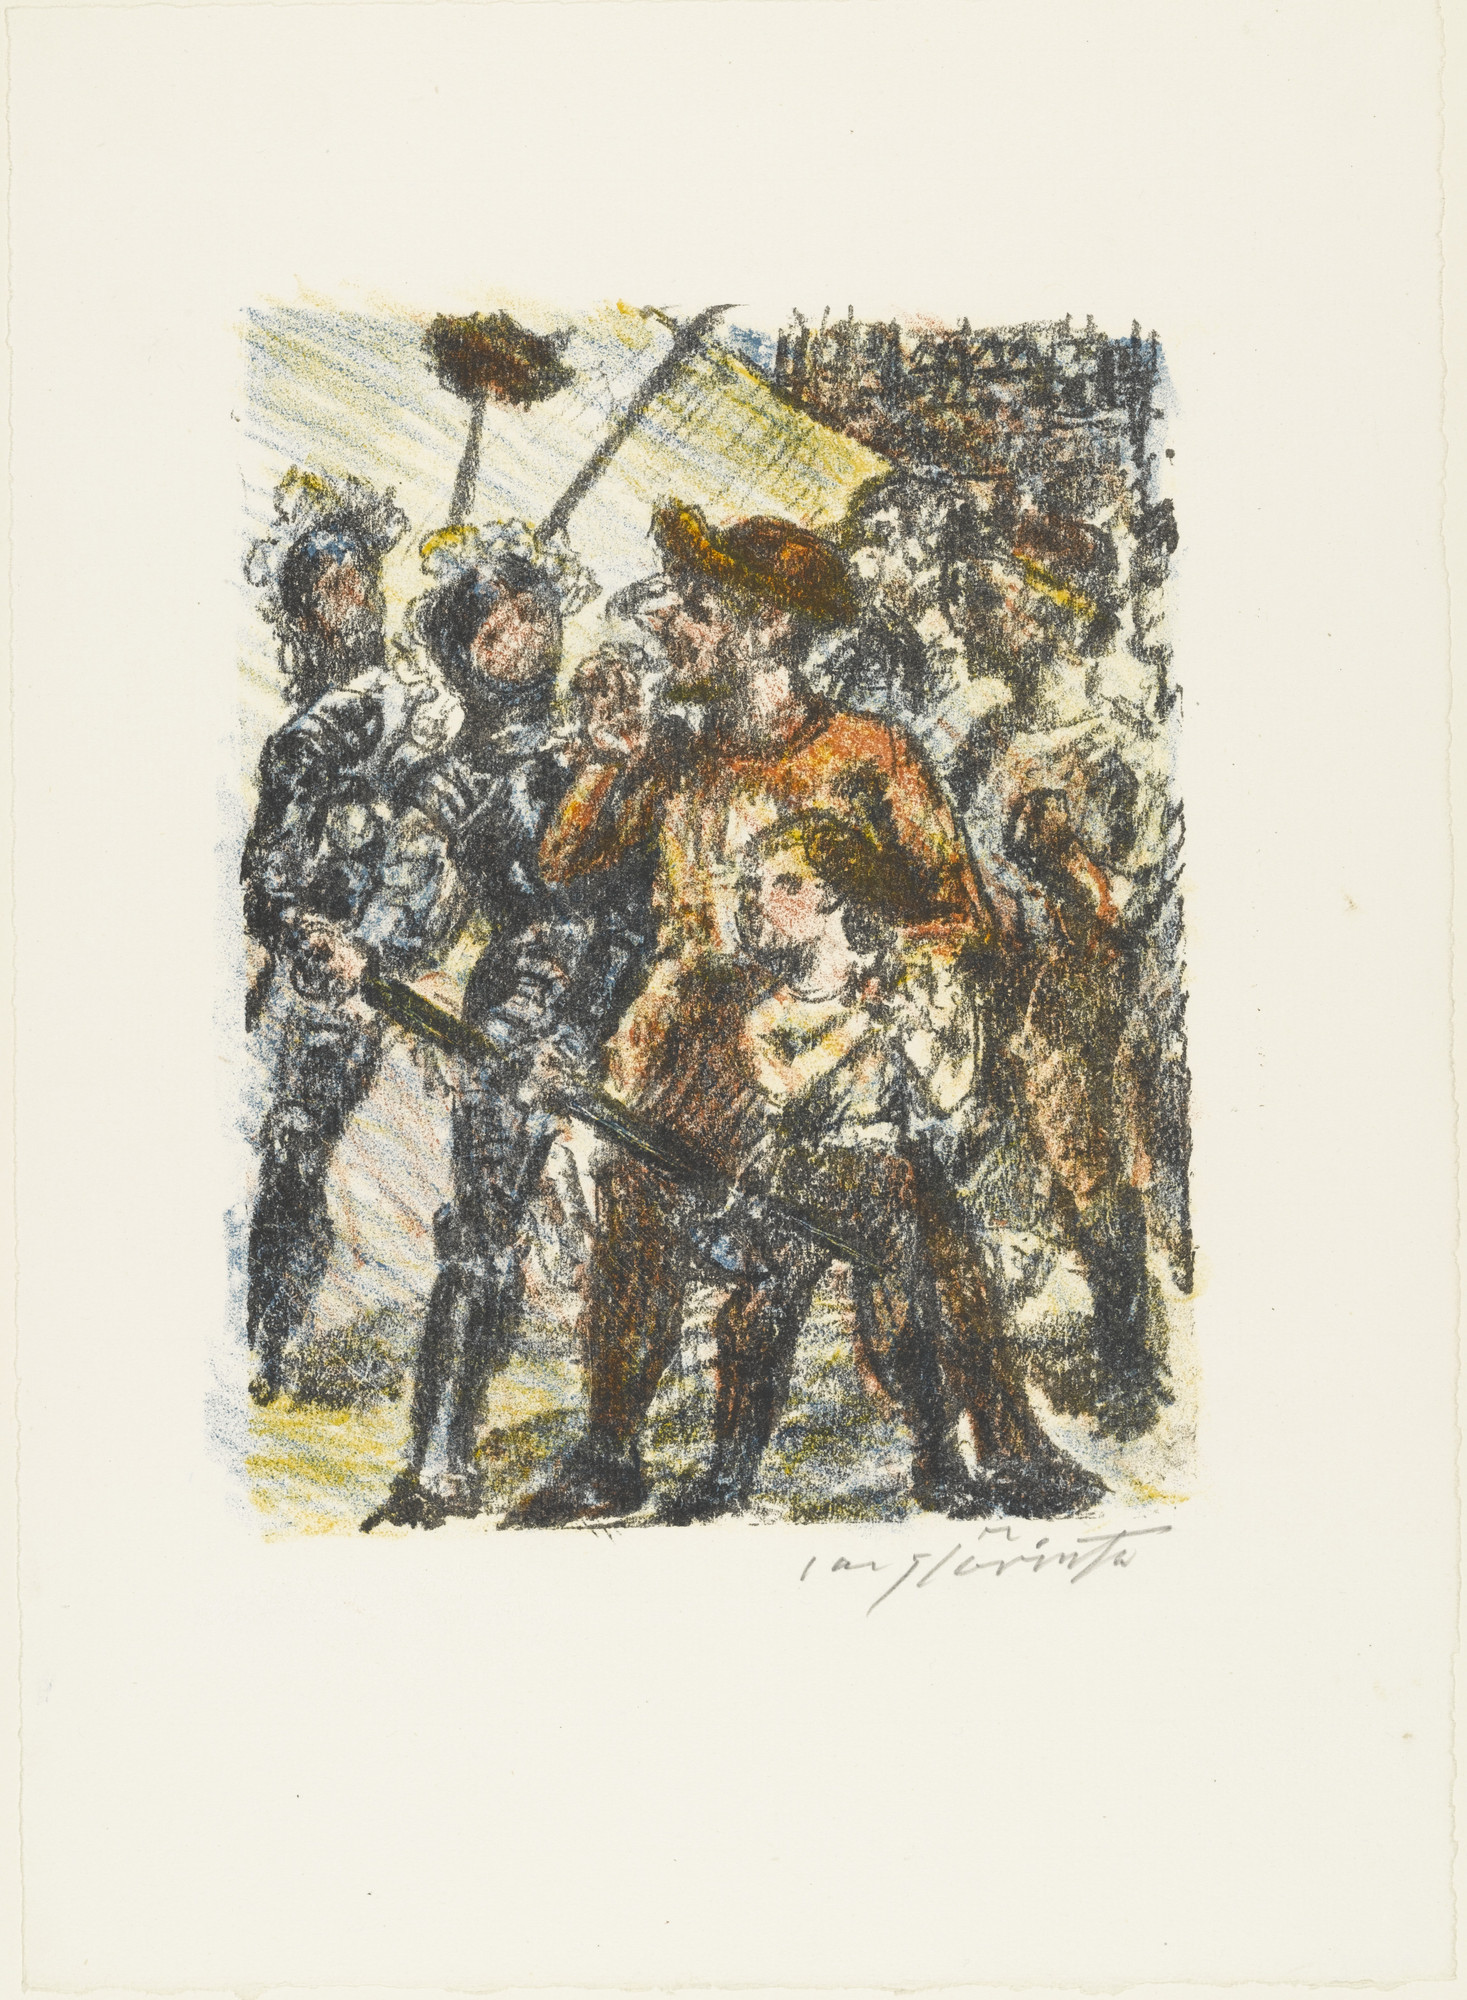 Lovis Corinth. Tell and His Son in Front of the Hat (Tell und sein Sohn vor dem Hut) from William Tell (Wilhelm Tell). (1923-24, published 1925)